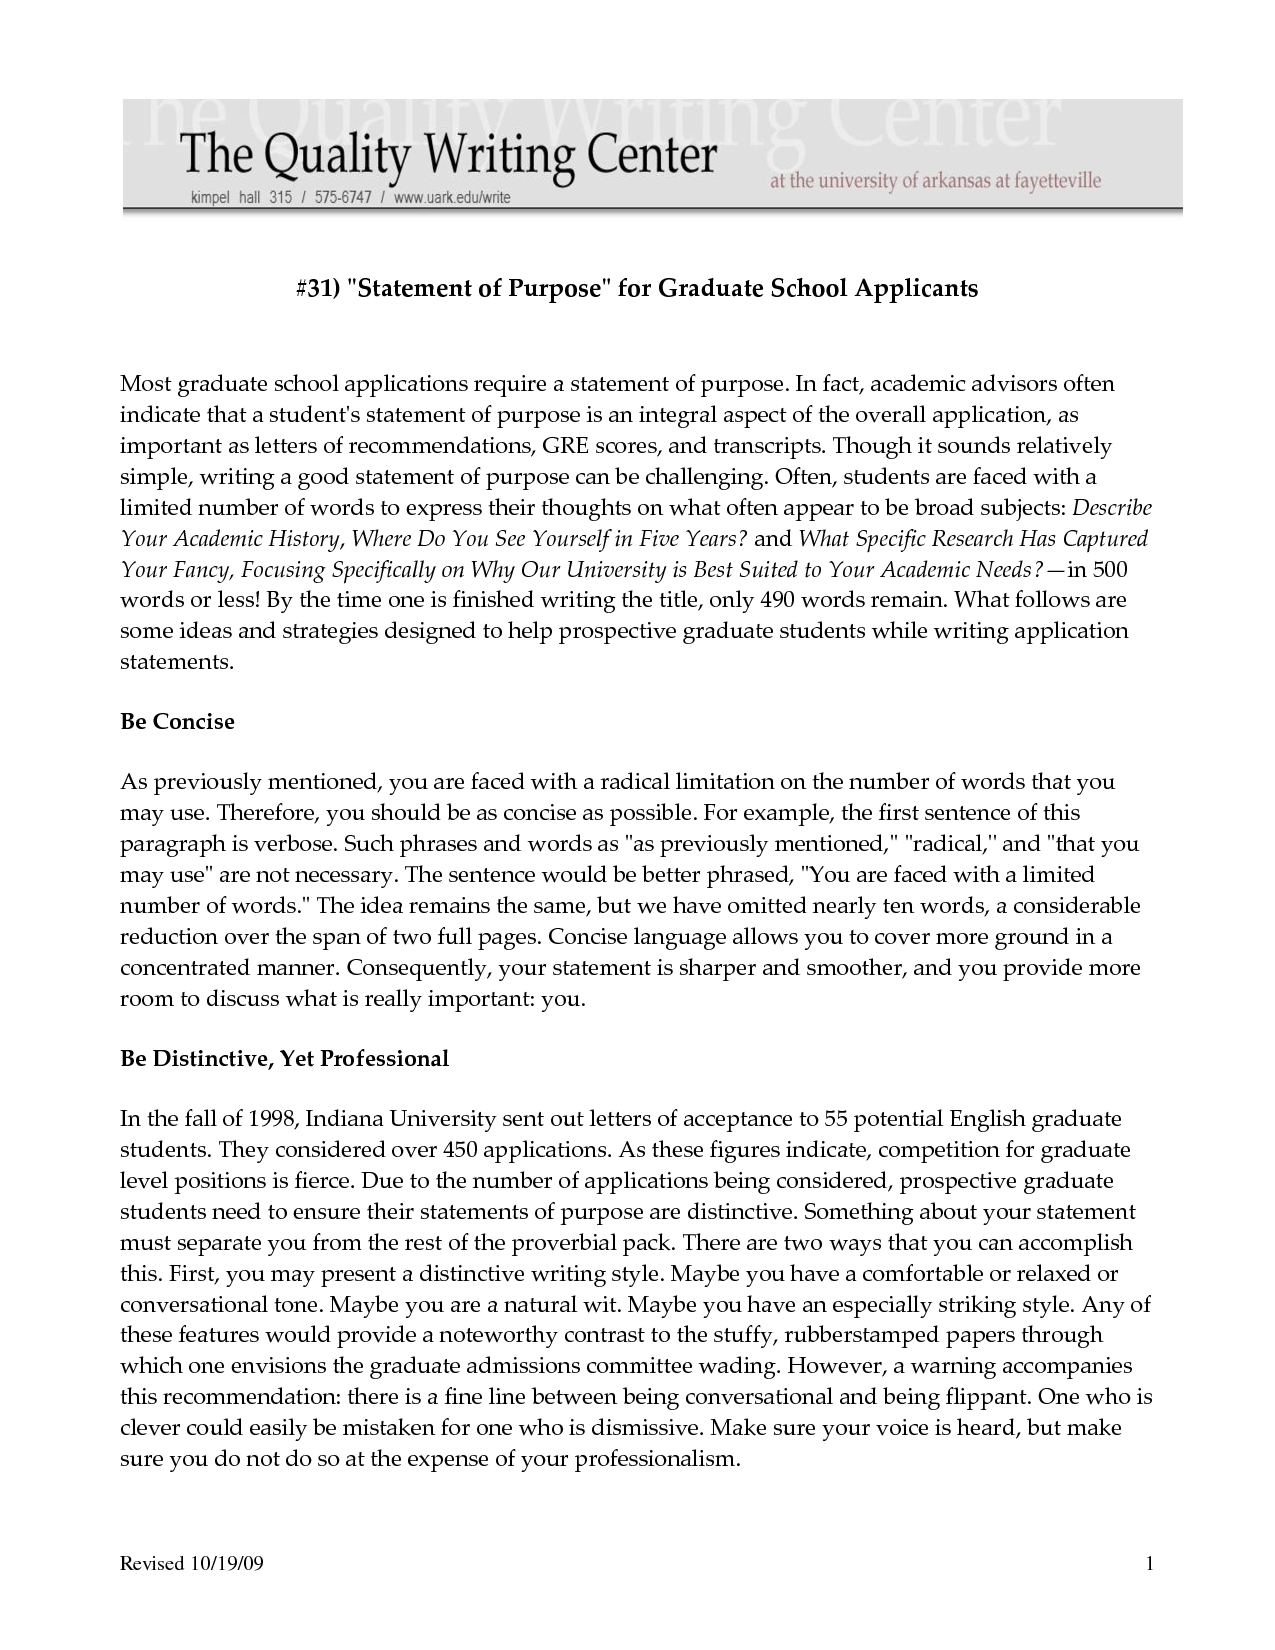 letter of intent for graduate school template example-Sample Personal Statements Graduate School 1-d